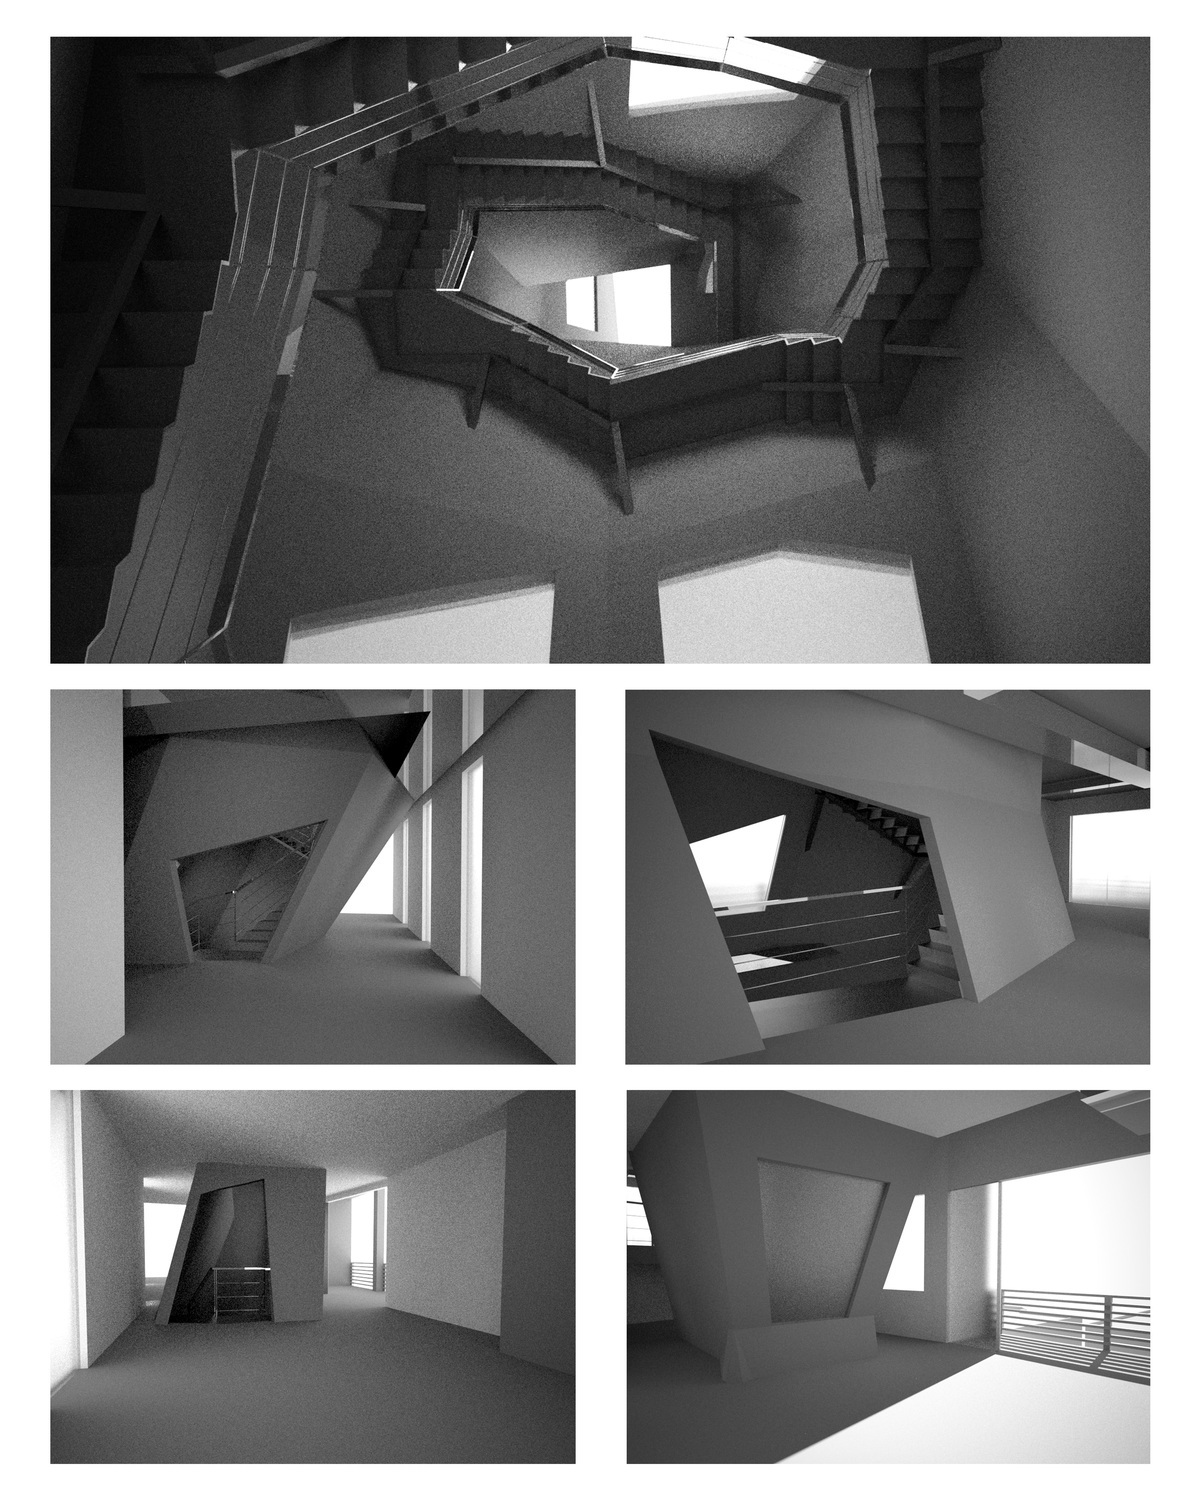 Views of the Vessel as visitors move through the building.